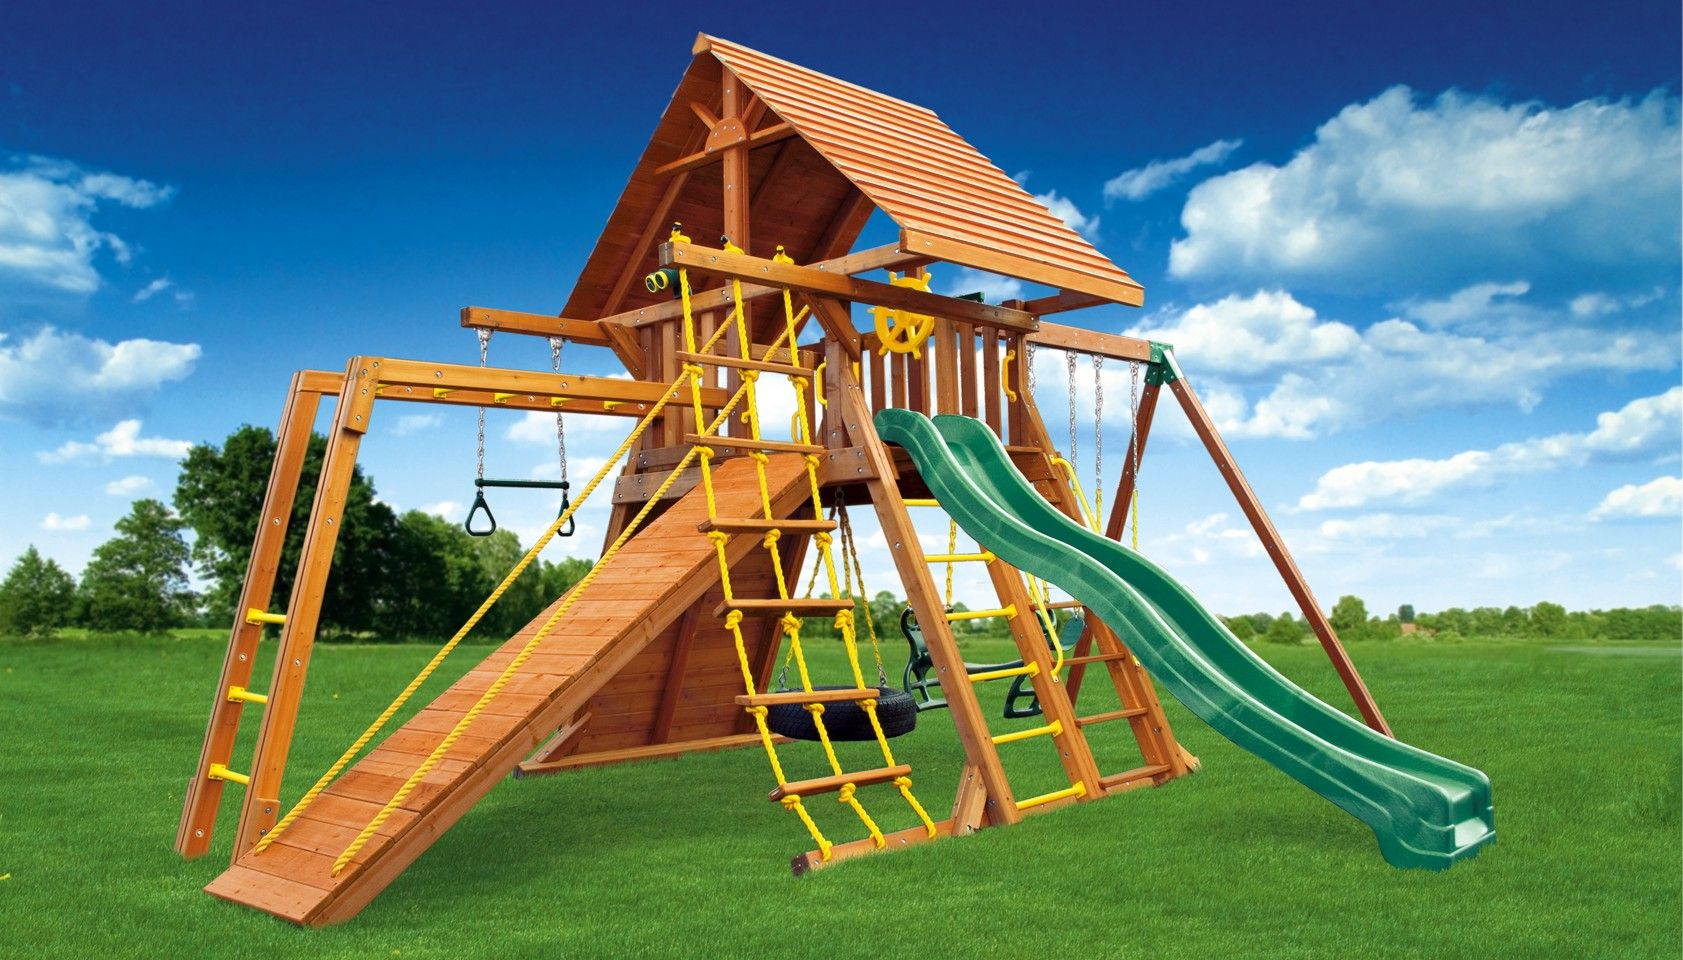 the supreme jungle gym 5 comes with a cedar wood roof monkey